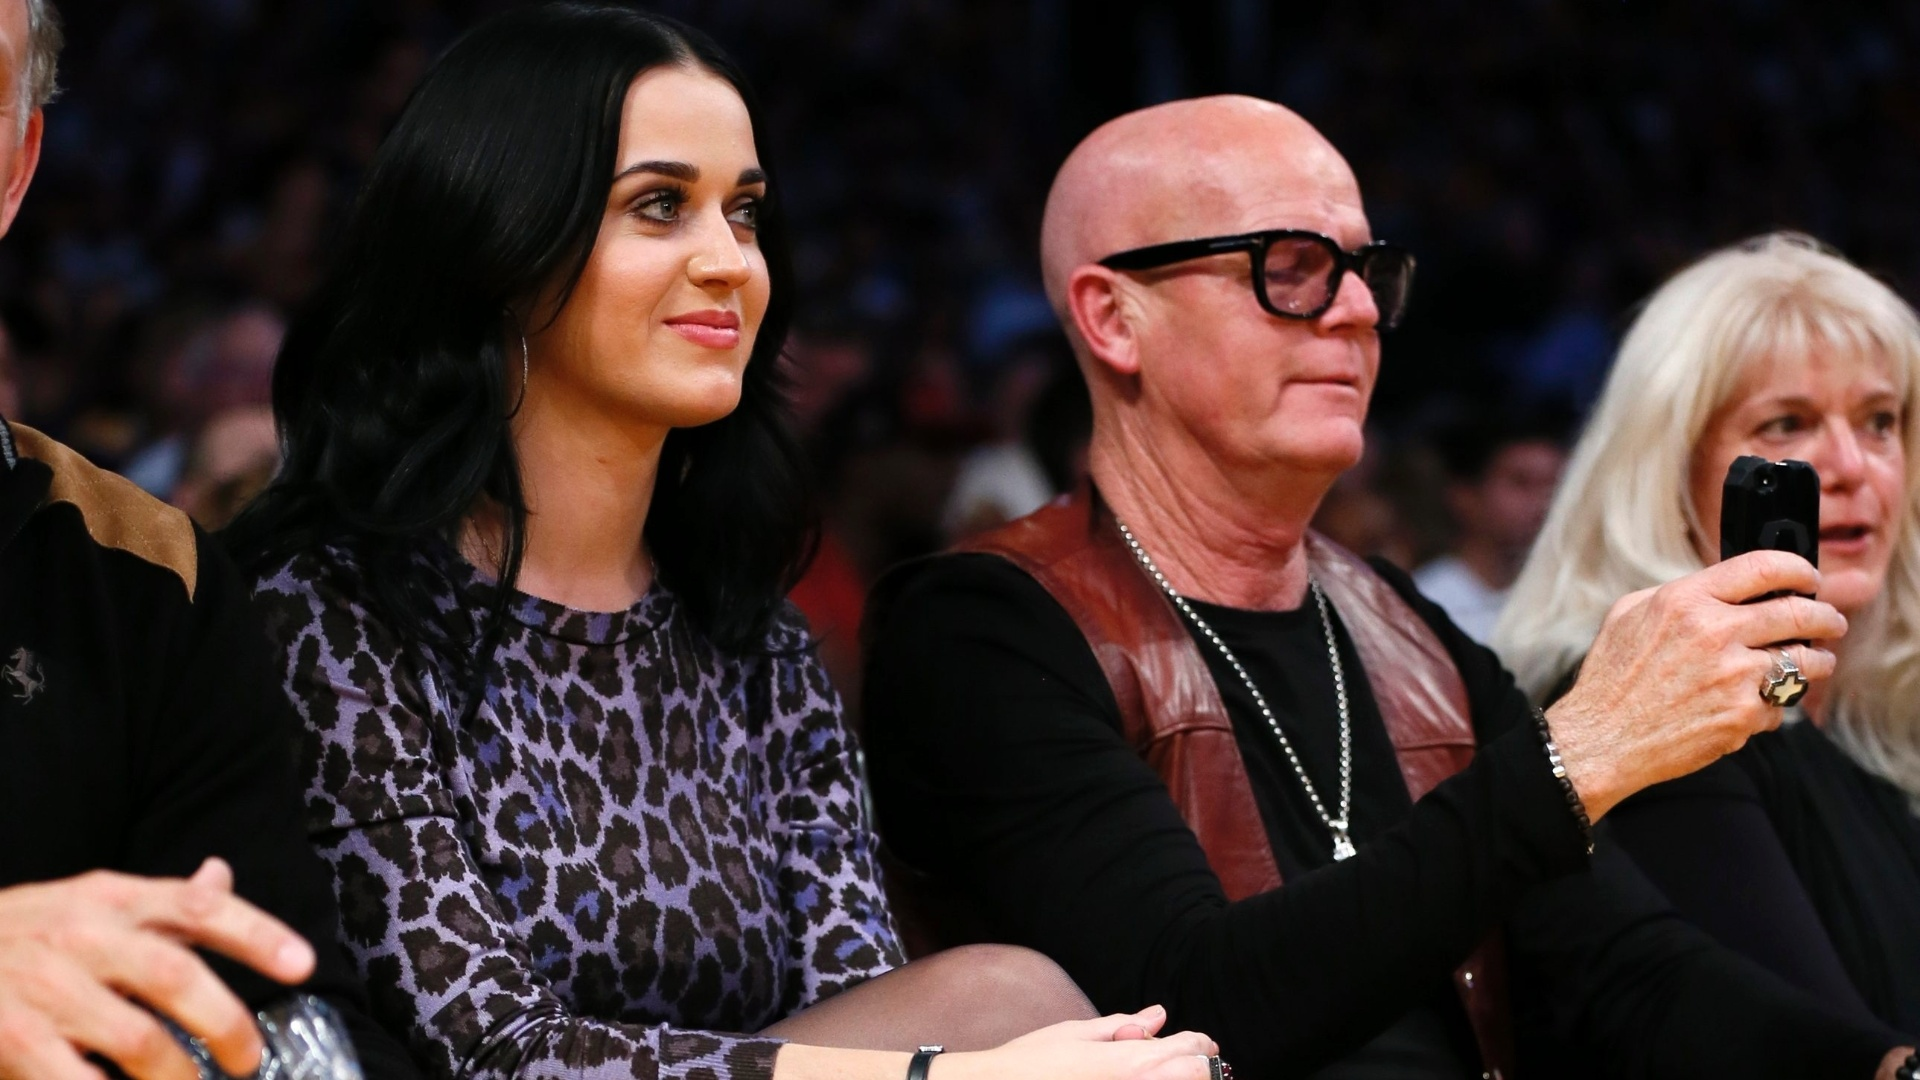 Cantora Katy Perry acompanha a partida entre Los Angeles Lakers e Dallas Mavericks na abertura da NBA (30/10/12)